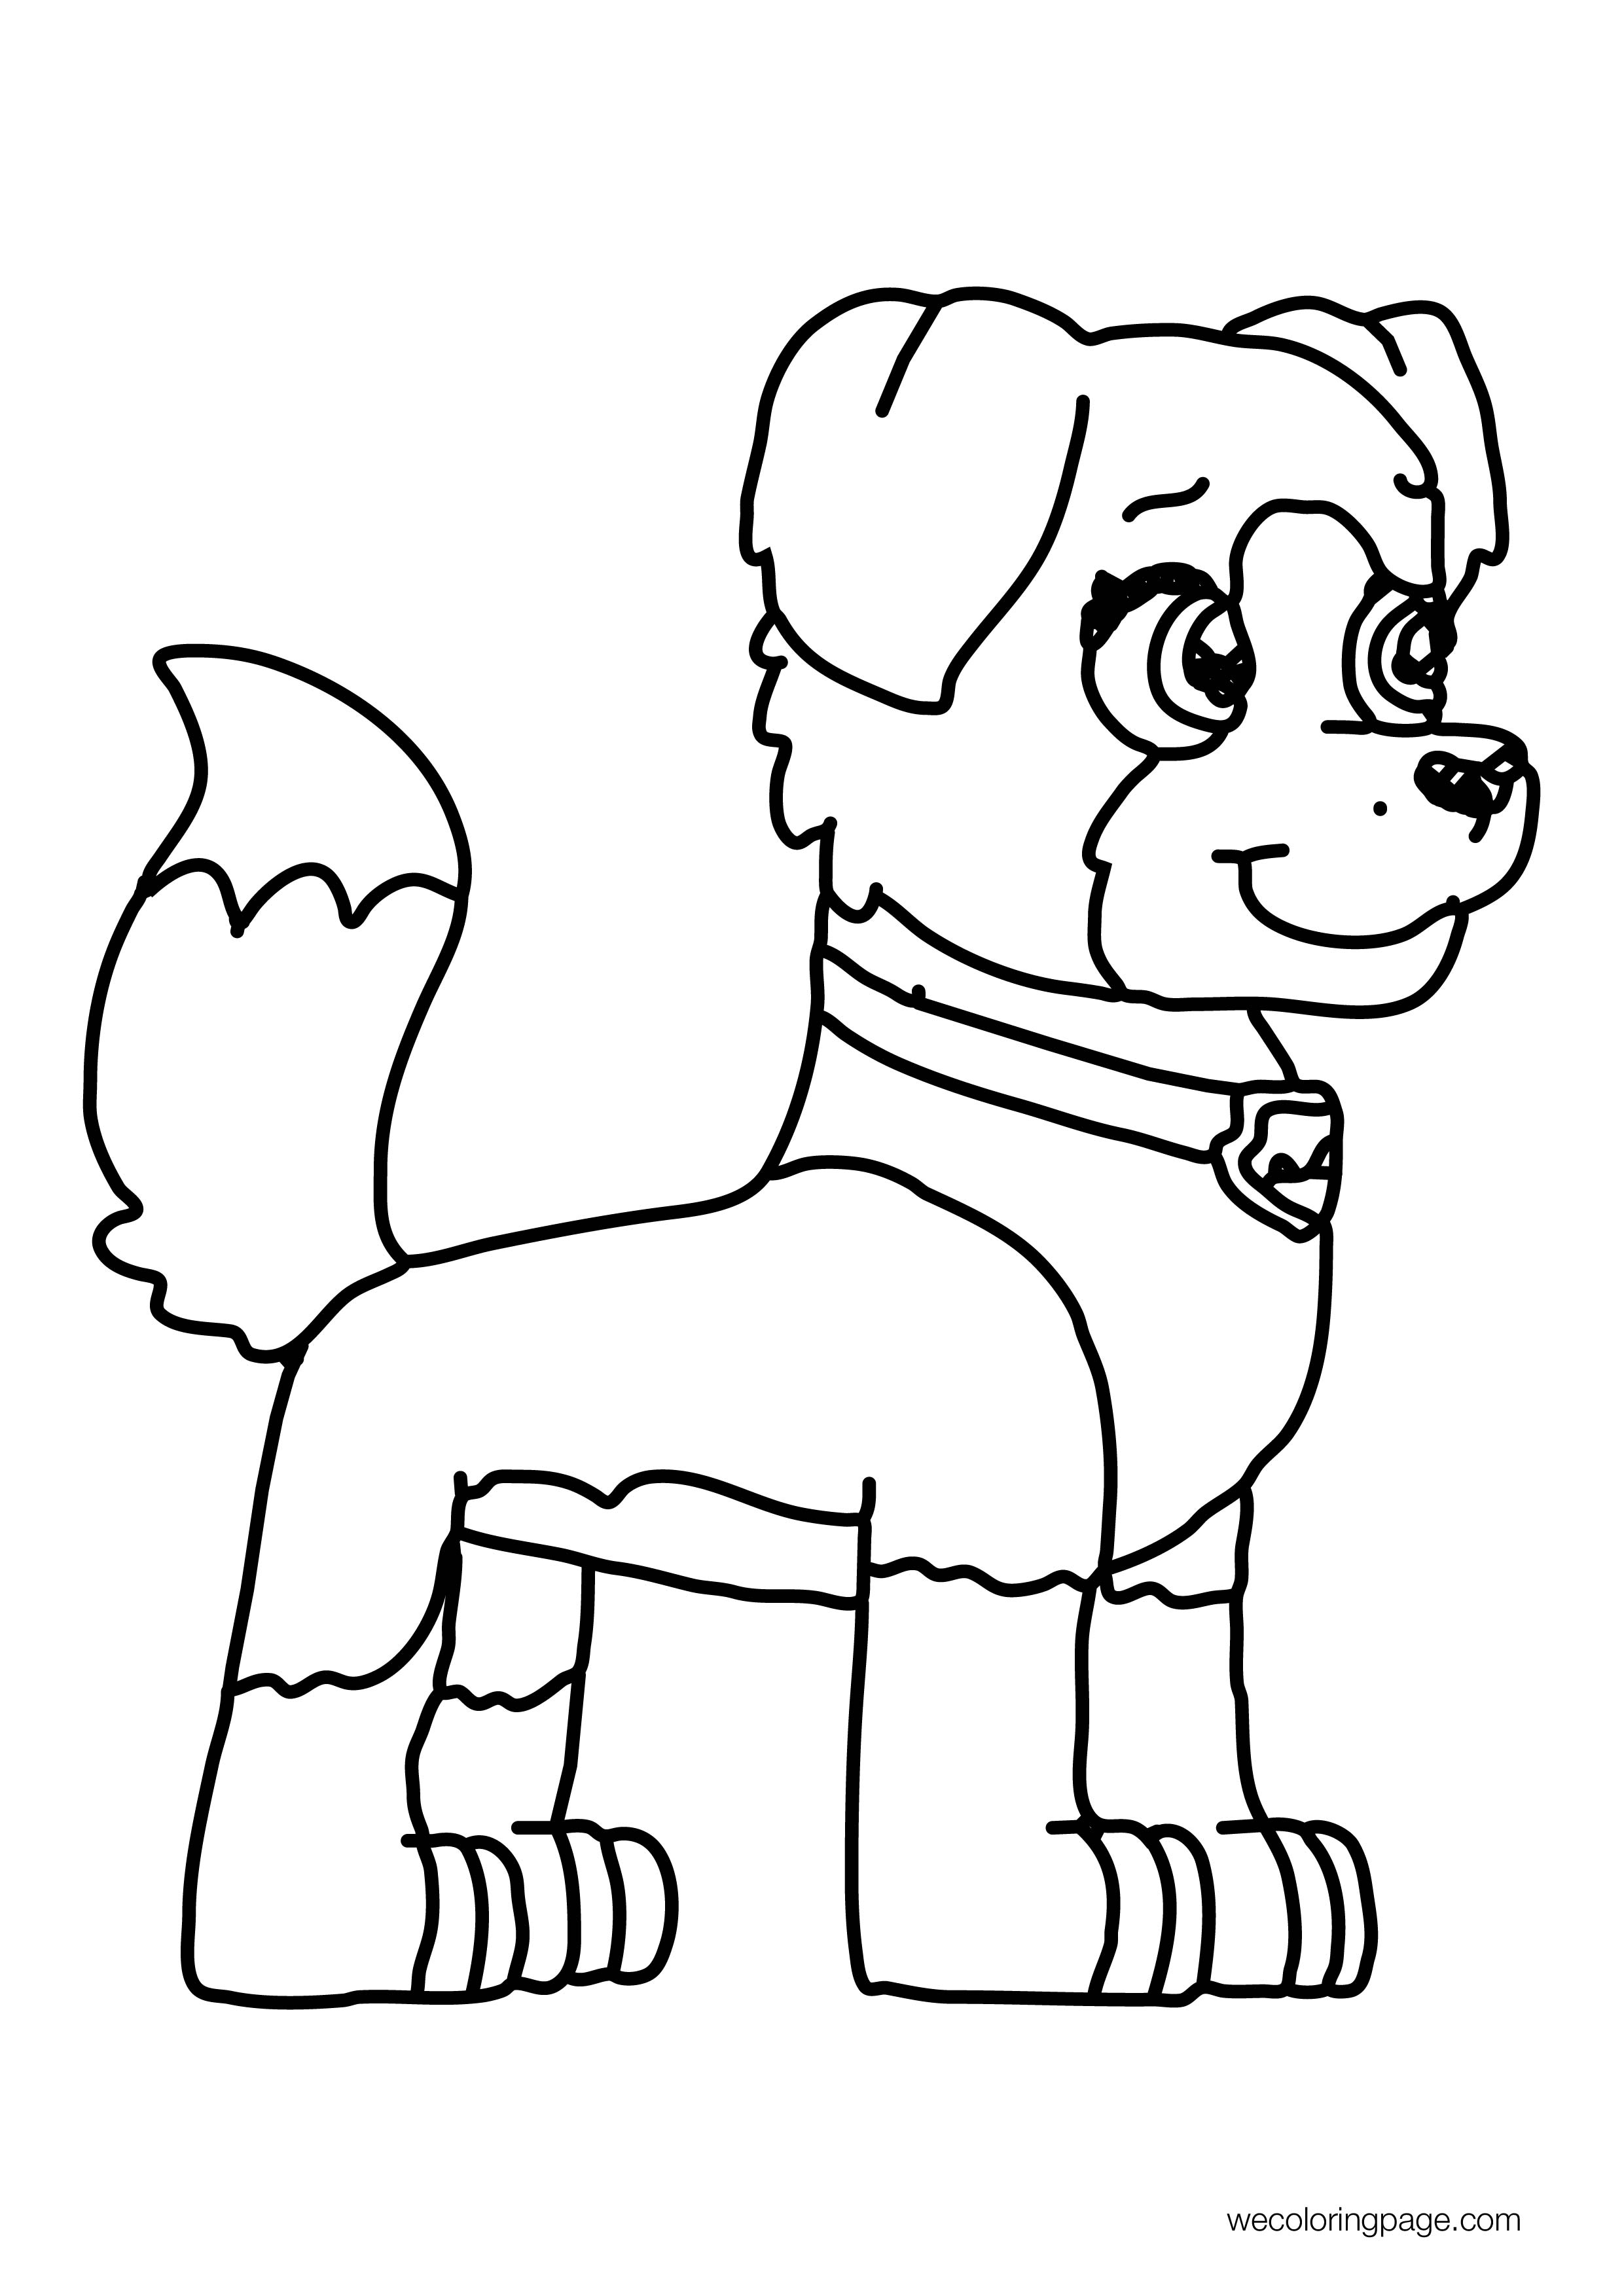 Mindy Paw Patrol Style Coloring Page